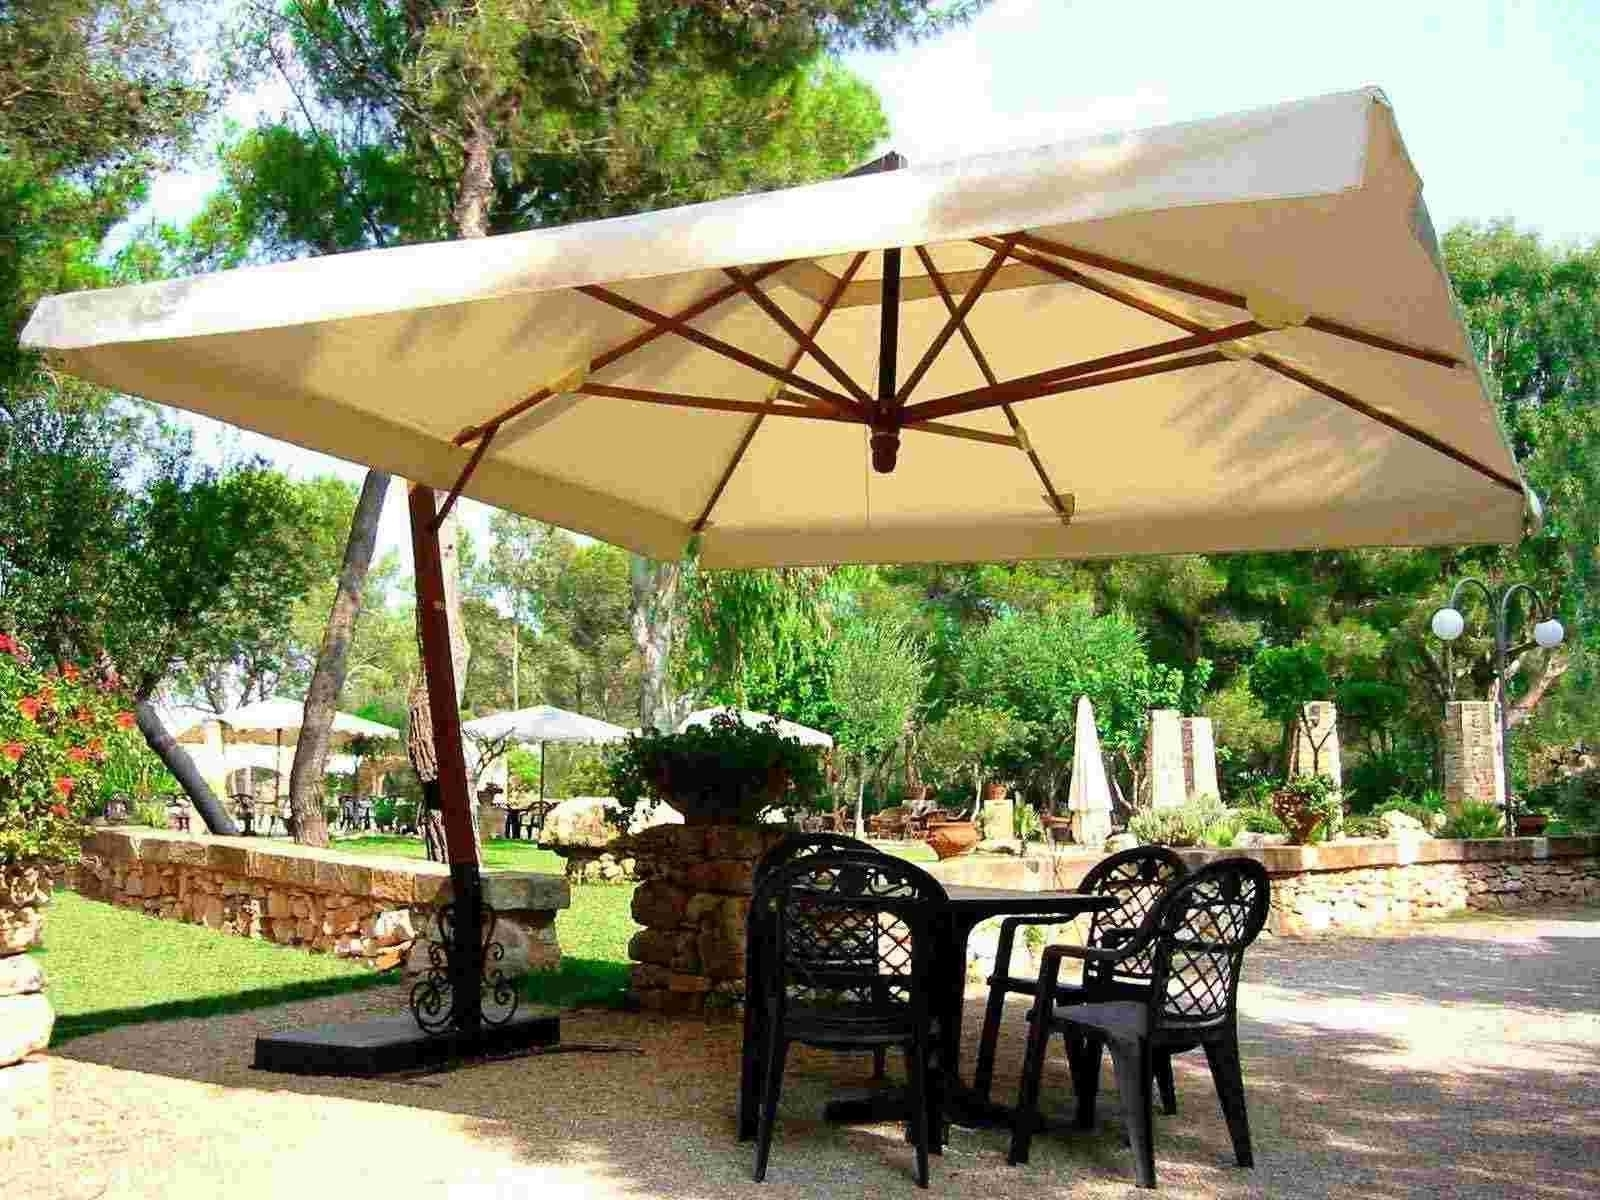 Well Known Rectangular Patio Umbrellas With Regard To Fancy Rectangular Patio Umbrella With Lights F77x On Perfect Home (View 19 of 20)